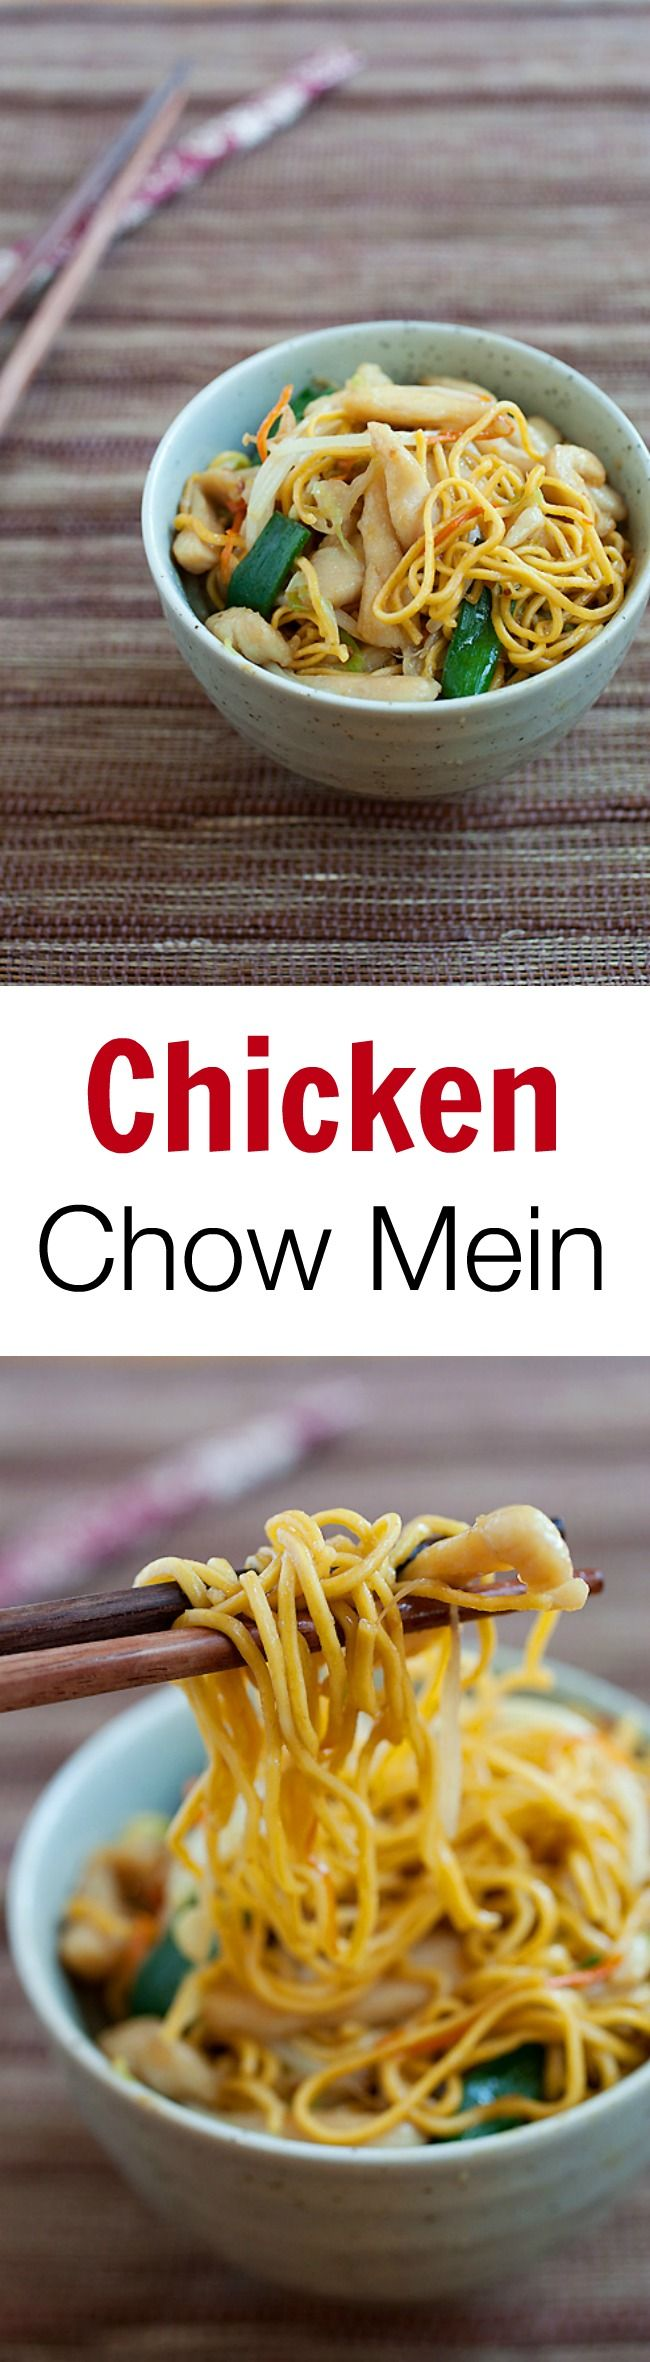 Chicken Chow Mein – the easiest and best chicken chow mein noodles you'll ever make. Healthy, budget-friendly and a zillion times better than takeout! | rasamalaysia.com